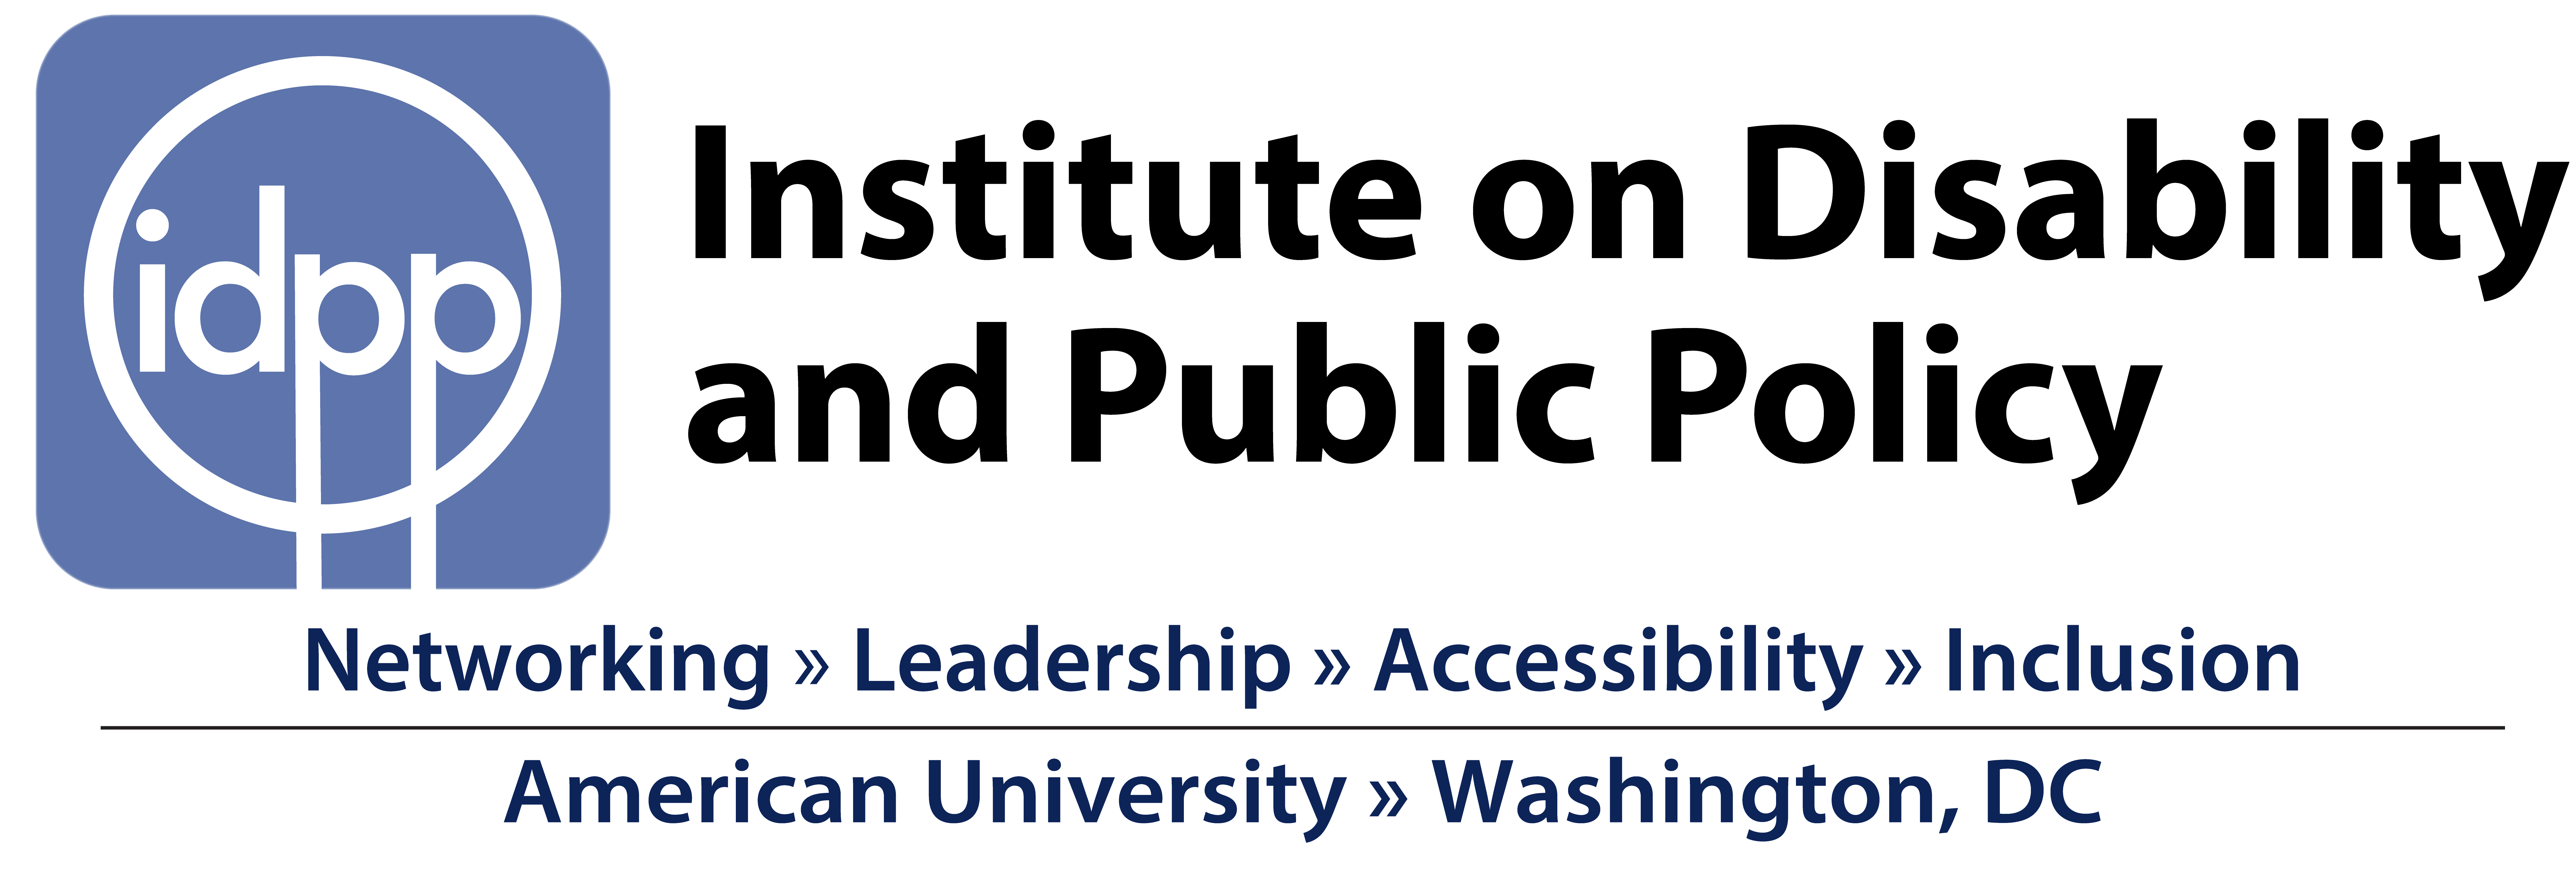 Logo shows white letters idpp inside a white circle on a blue background next to the full name in black Institute on Disability and Public Policy. Then below these is the slogan Networking >> Leadership >> Accessibility >> Inclusion. Below this it says American University >> Washington, DC